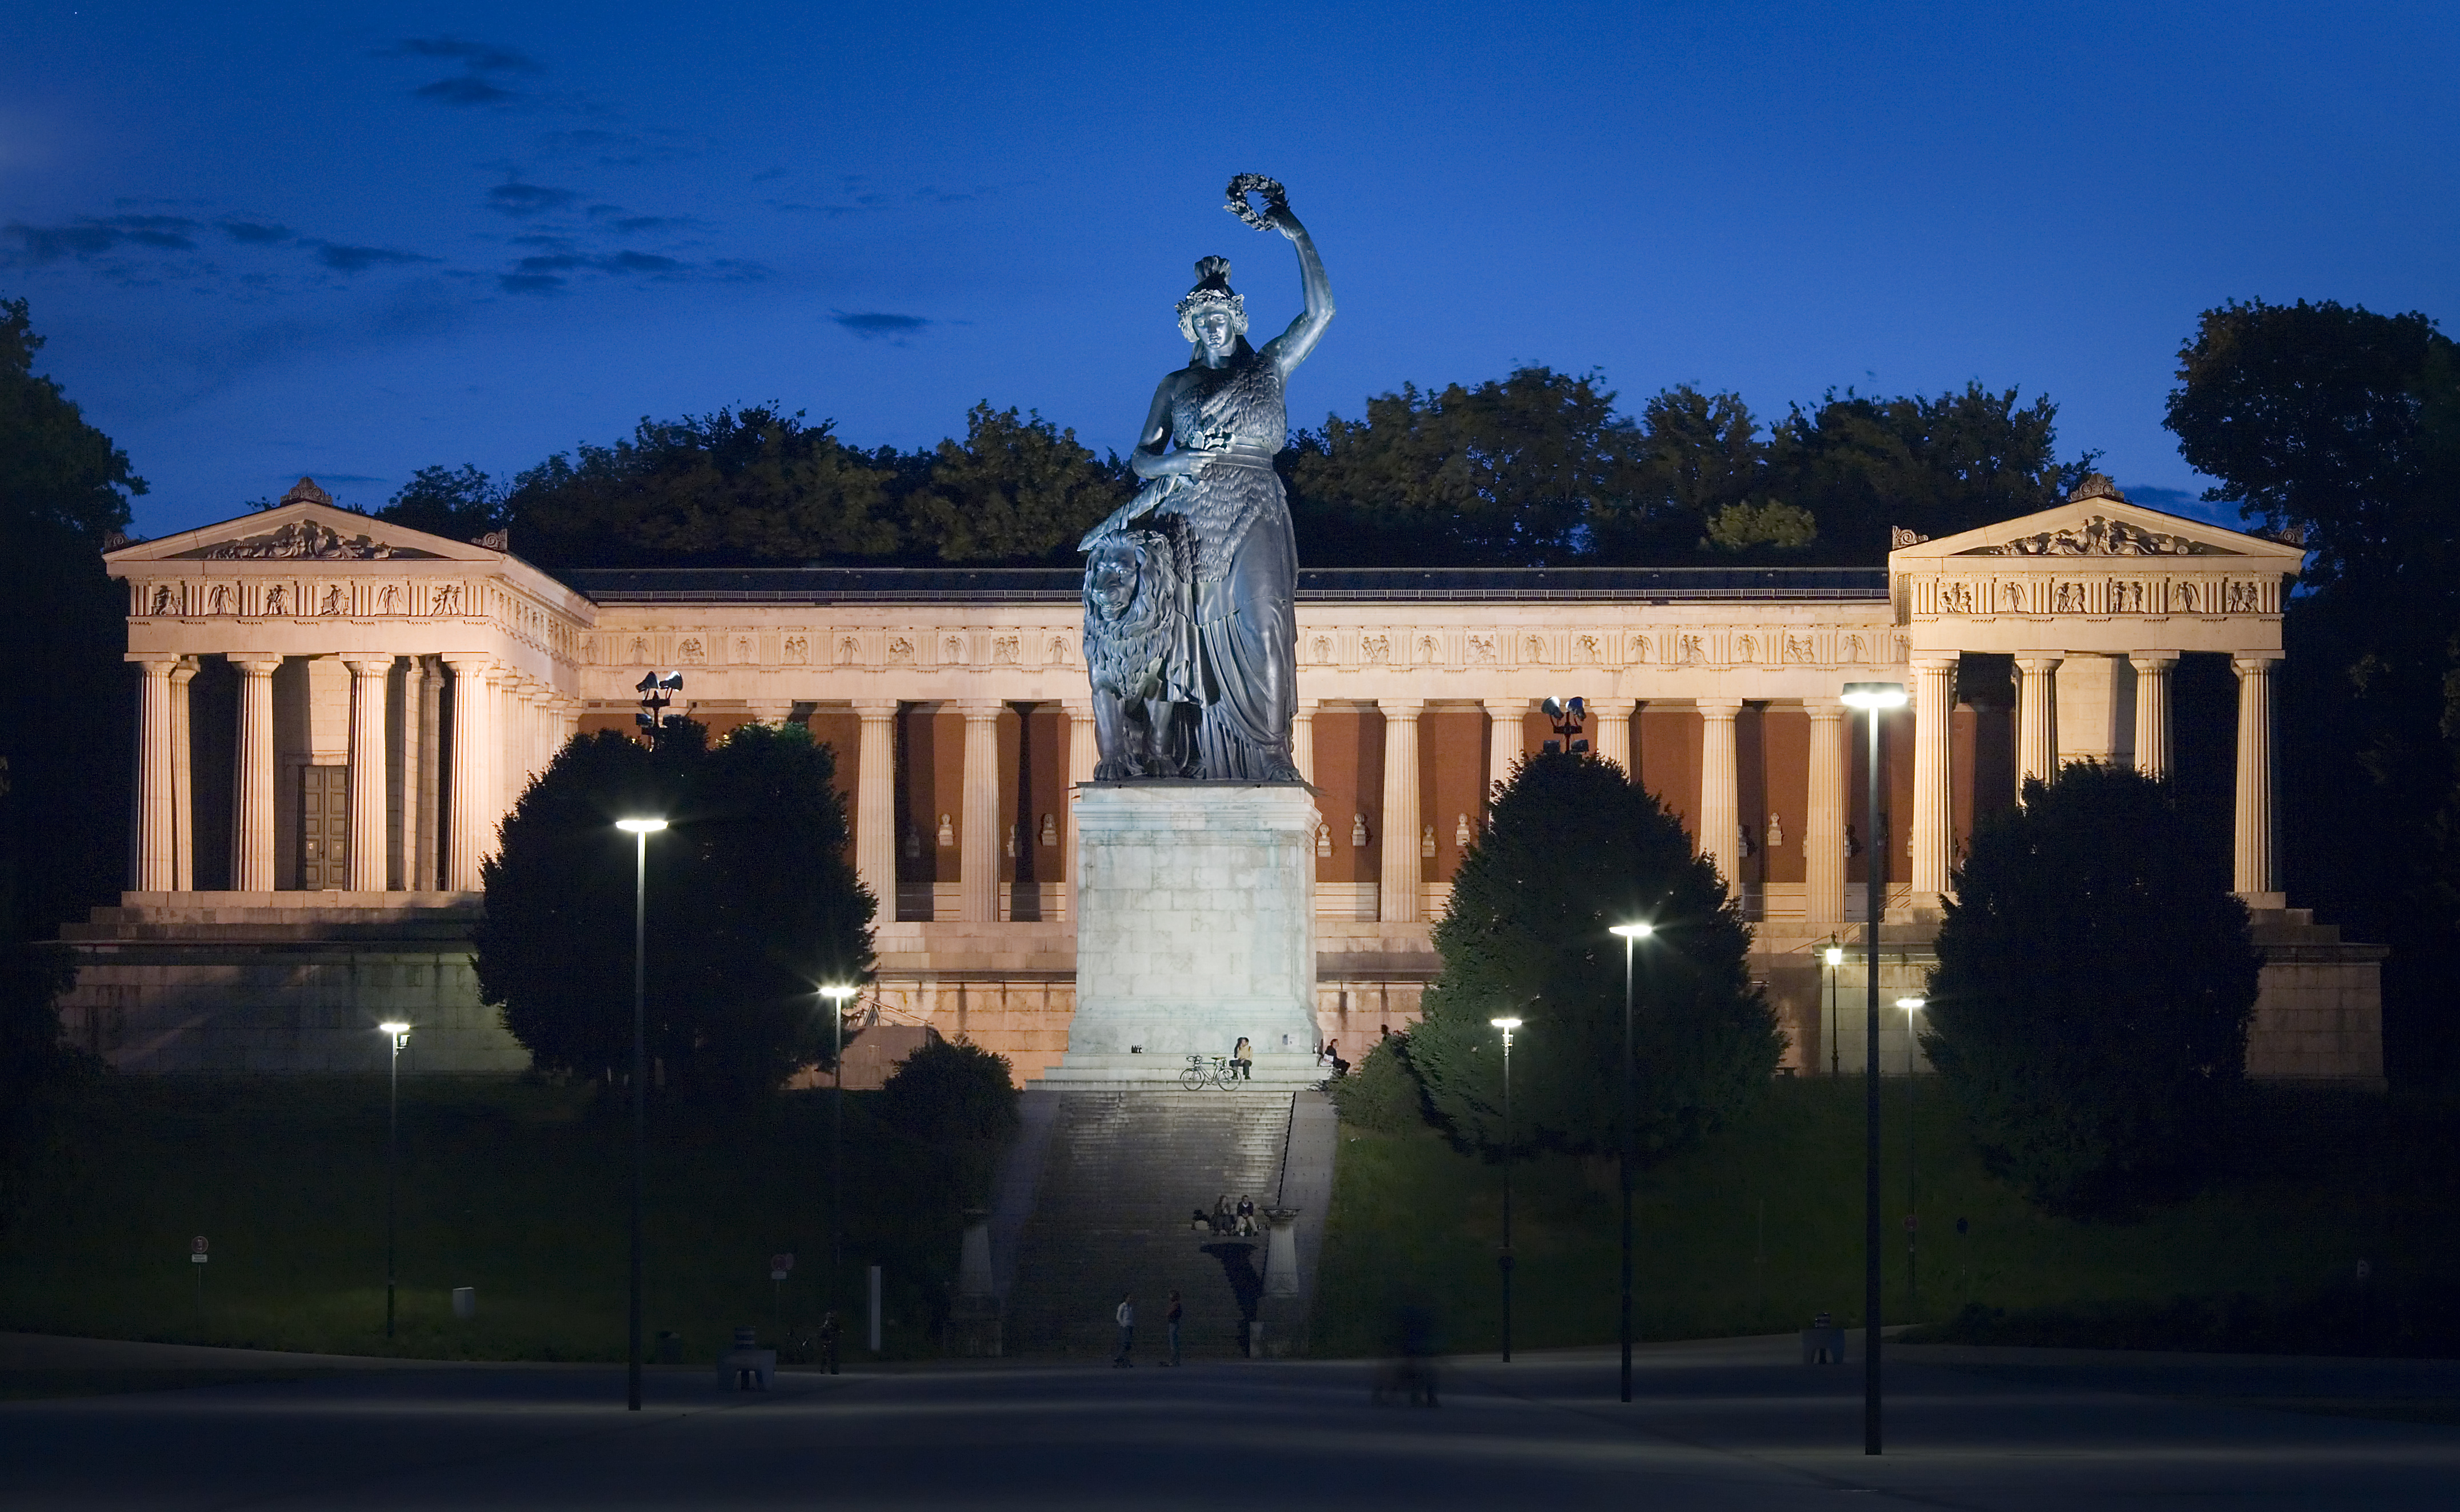 File:Munich - Bavaria statue on the Theresienwiese - 5575.jpg